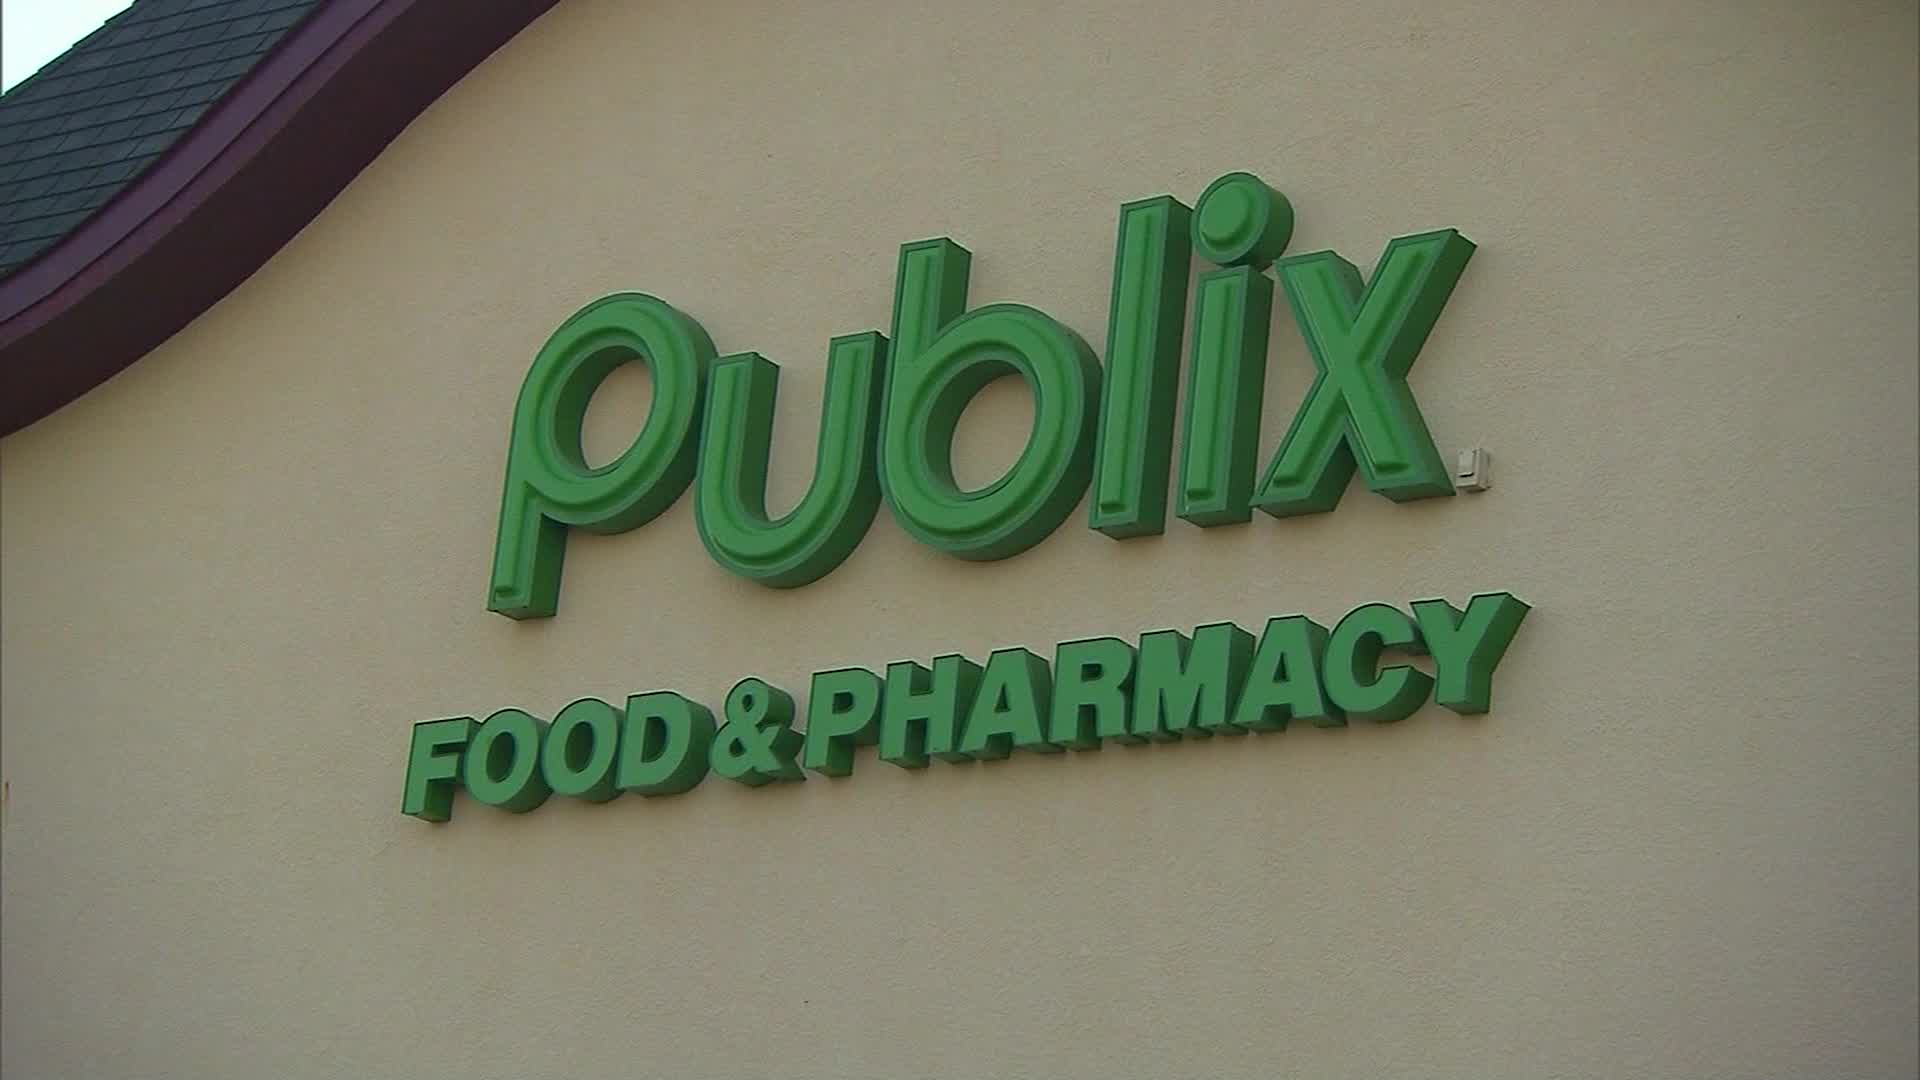 Wfla Halloween Meet 2020 Publix hiring thousands of new employees to meet COVID 19 outbreak